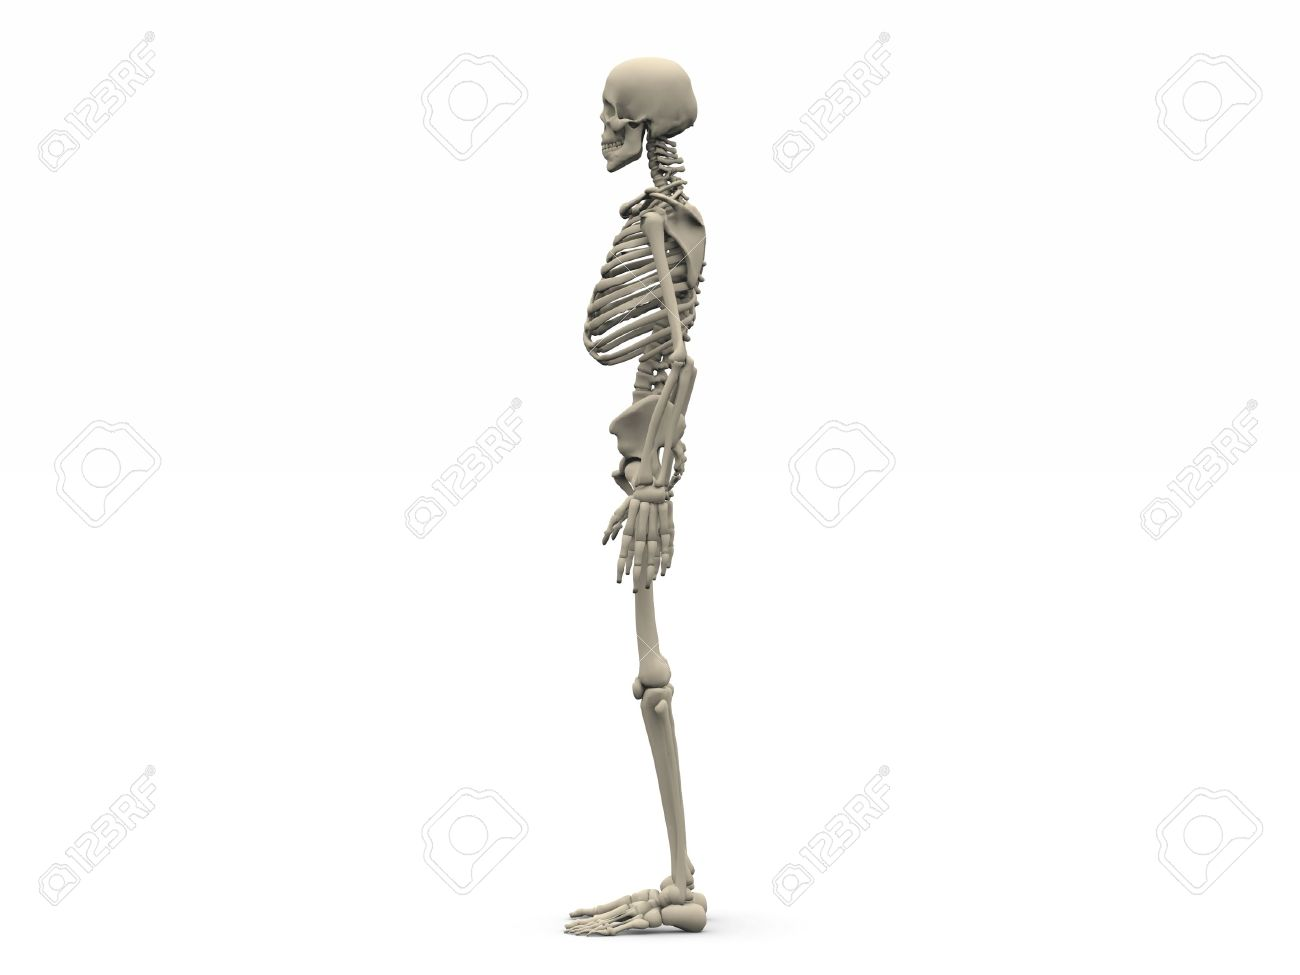 Digital Render Of A Human Skeleton In Side View Stock Photo Picture